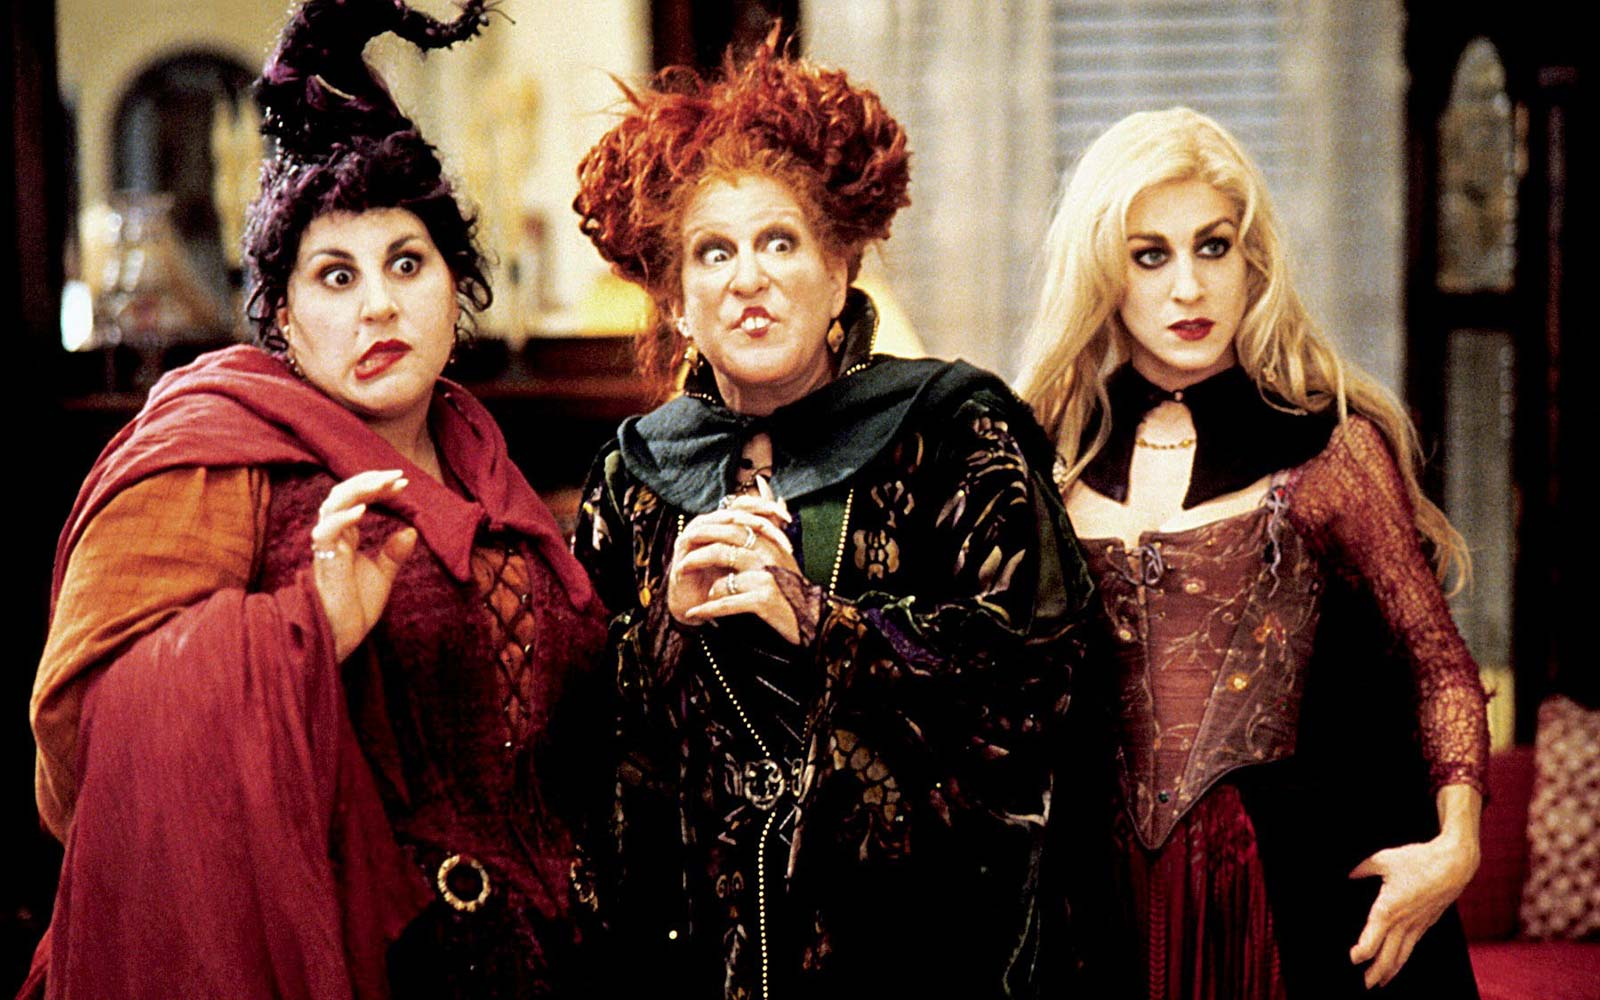 Winifred, Mary, and Sarah Sanderson from Hocus Pocus